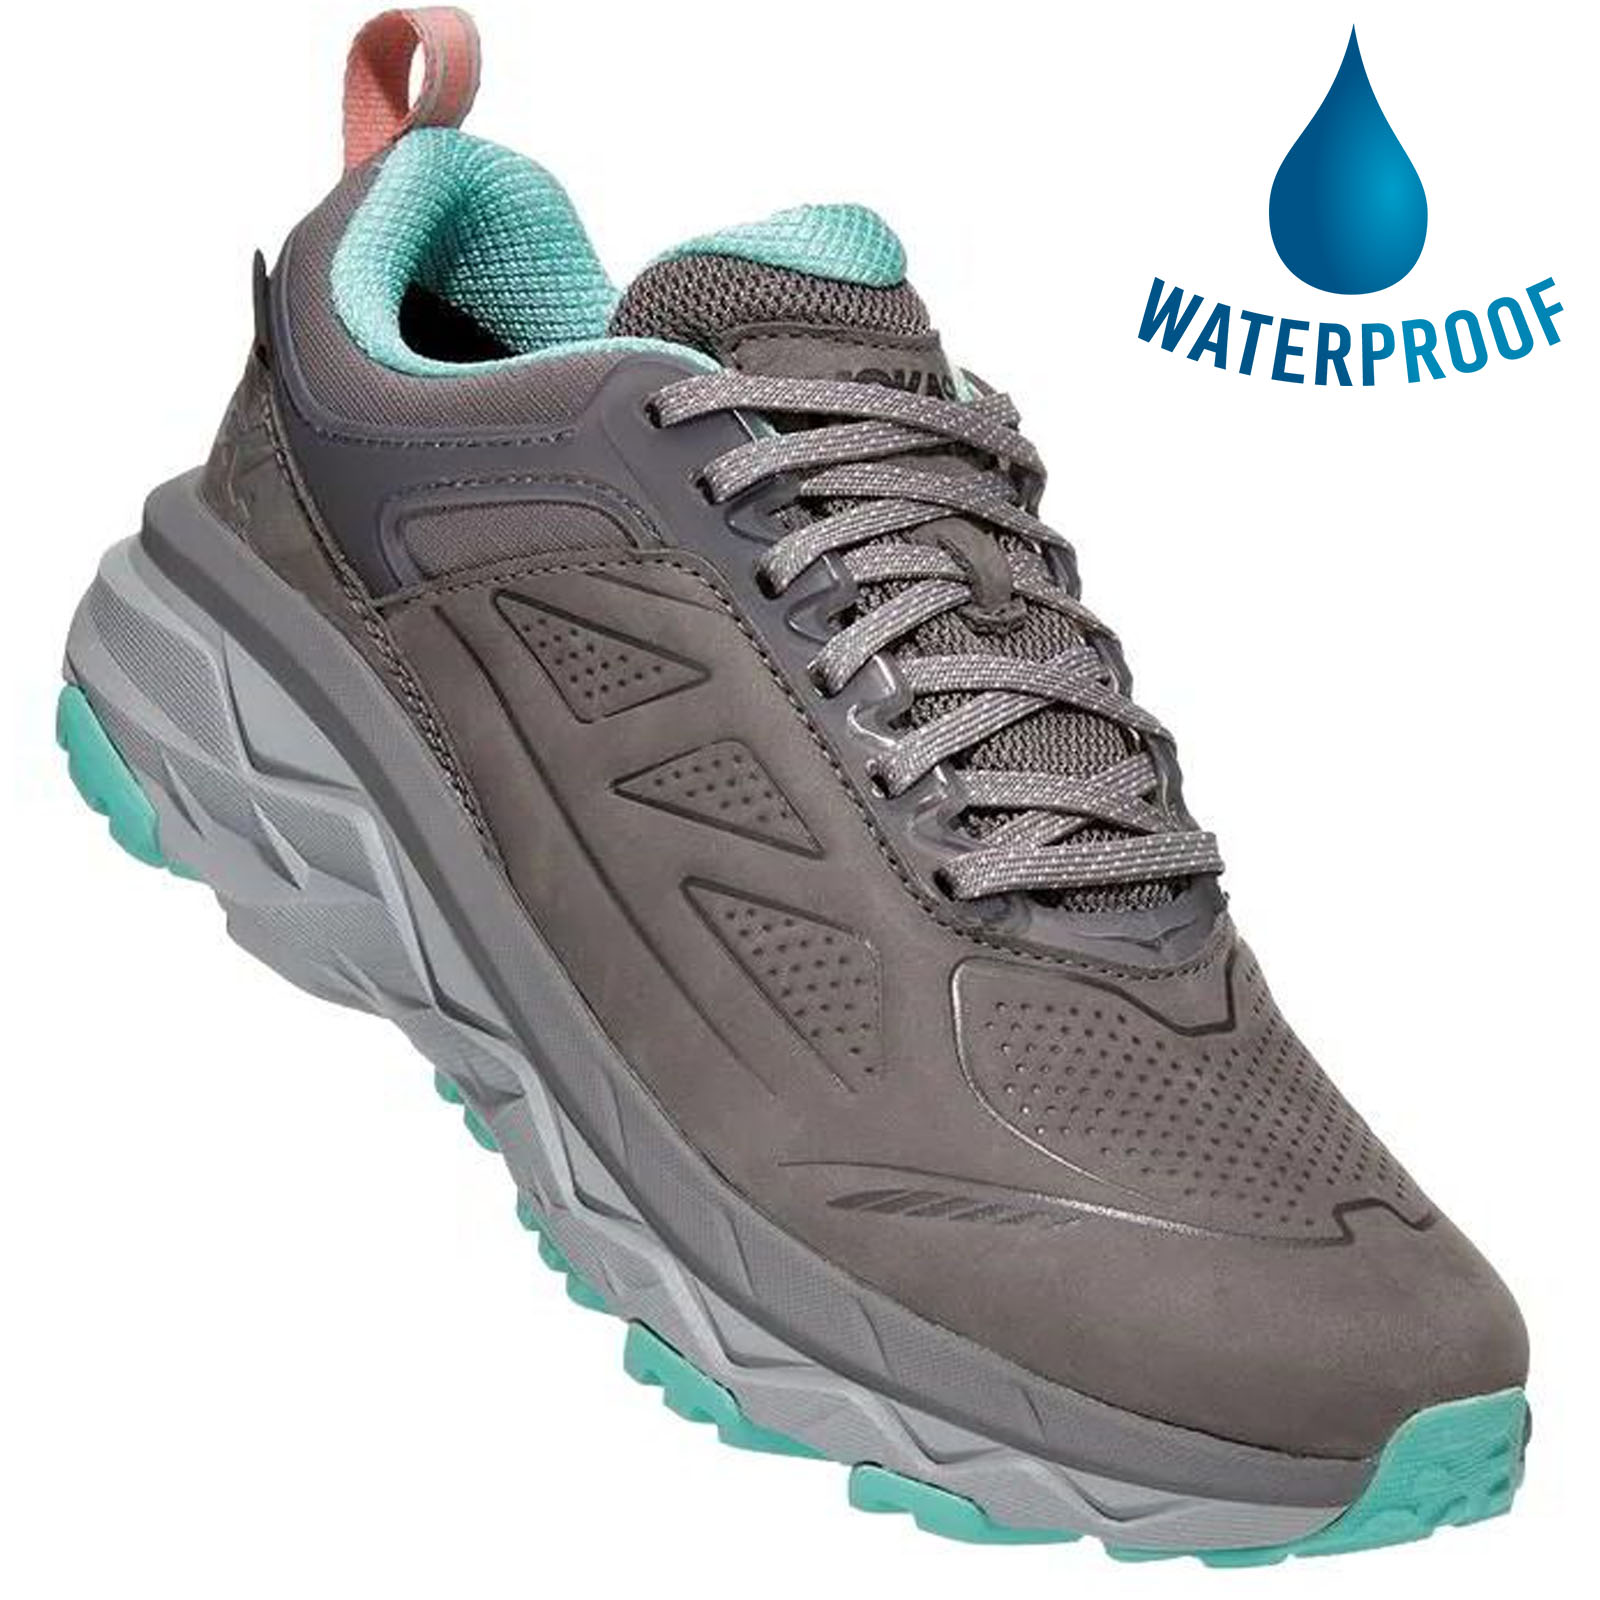 Hoka One One Womens Challenger Low GTX Waterproof Trail Running Shoes - Charcoal Grey Wild Dove